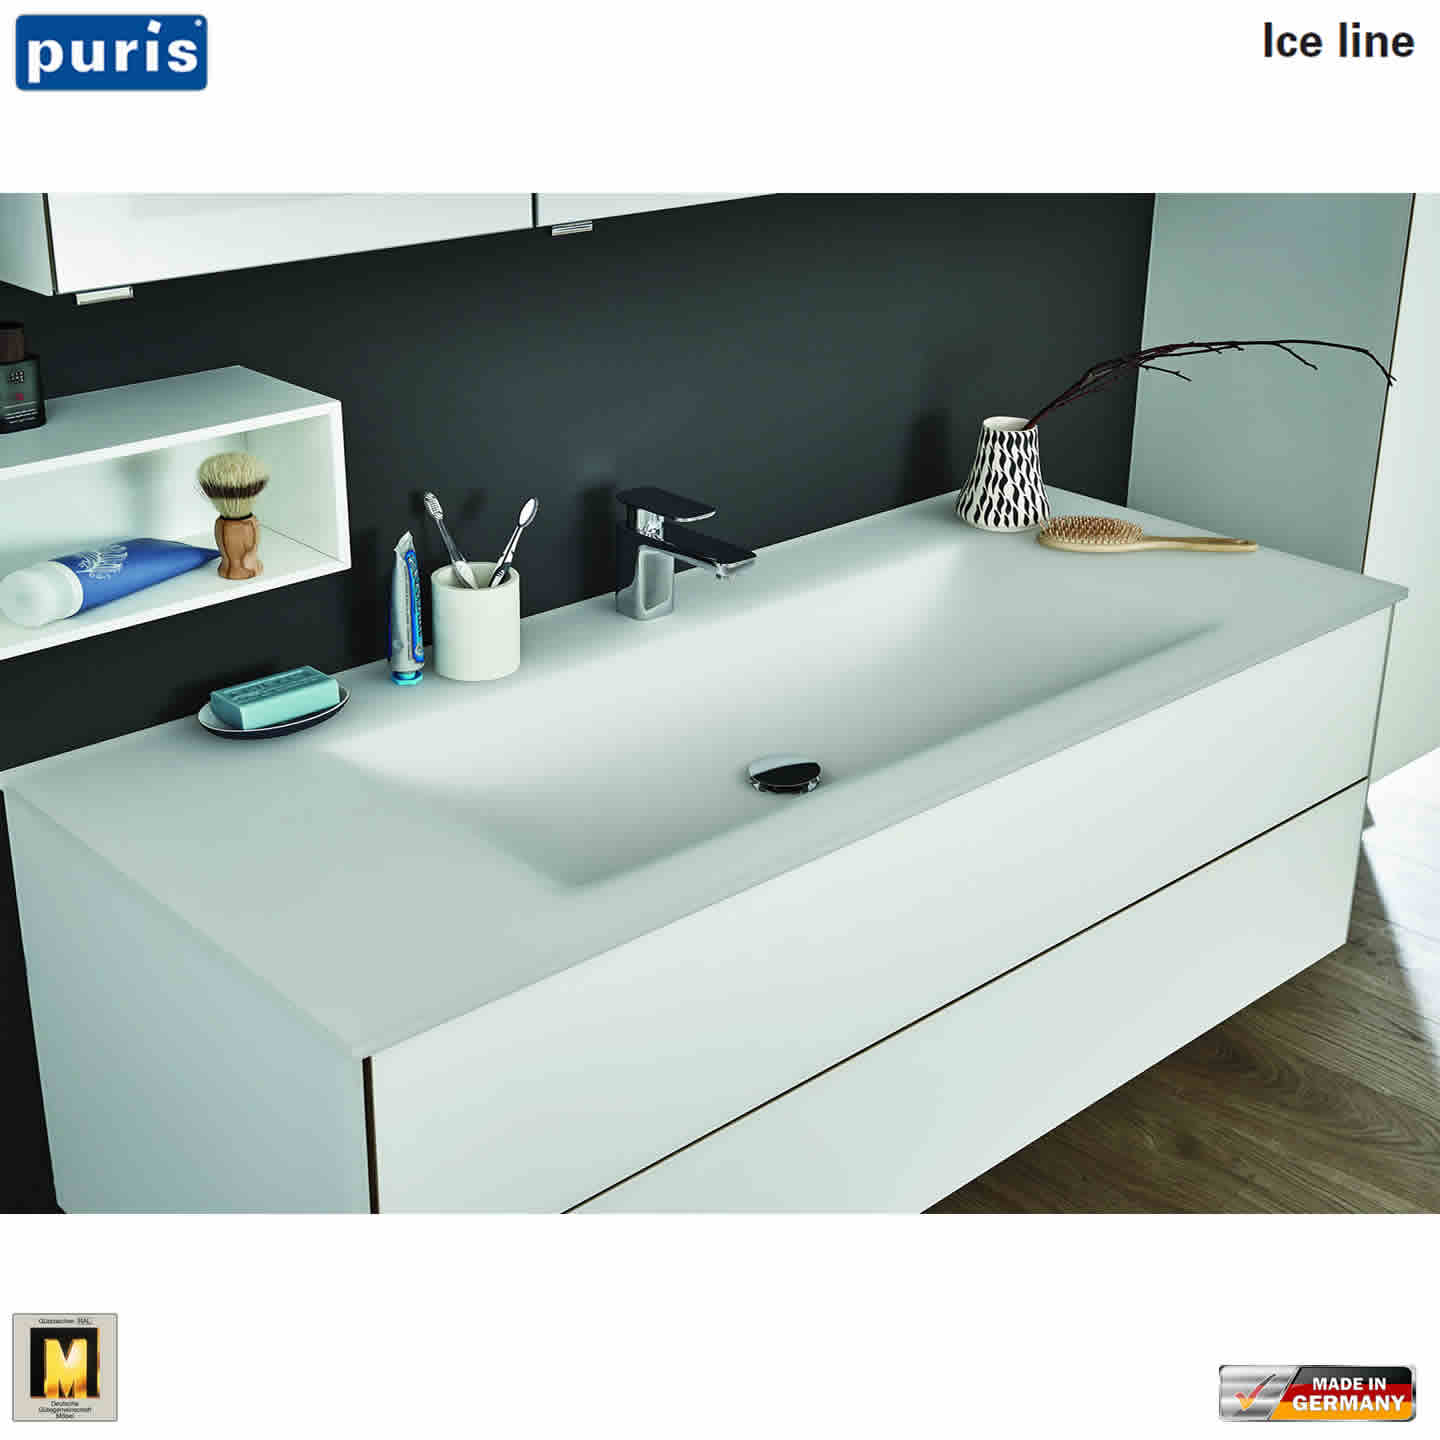 puris ice line waschtisch set 120 cm mit glas waschtisch impulsbad. Black Bedroom Furniture Sets. Home Design Ideas